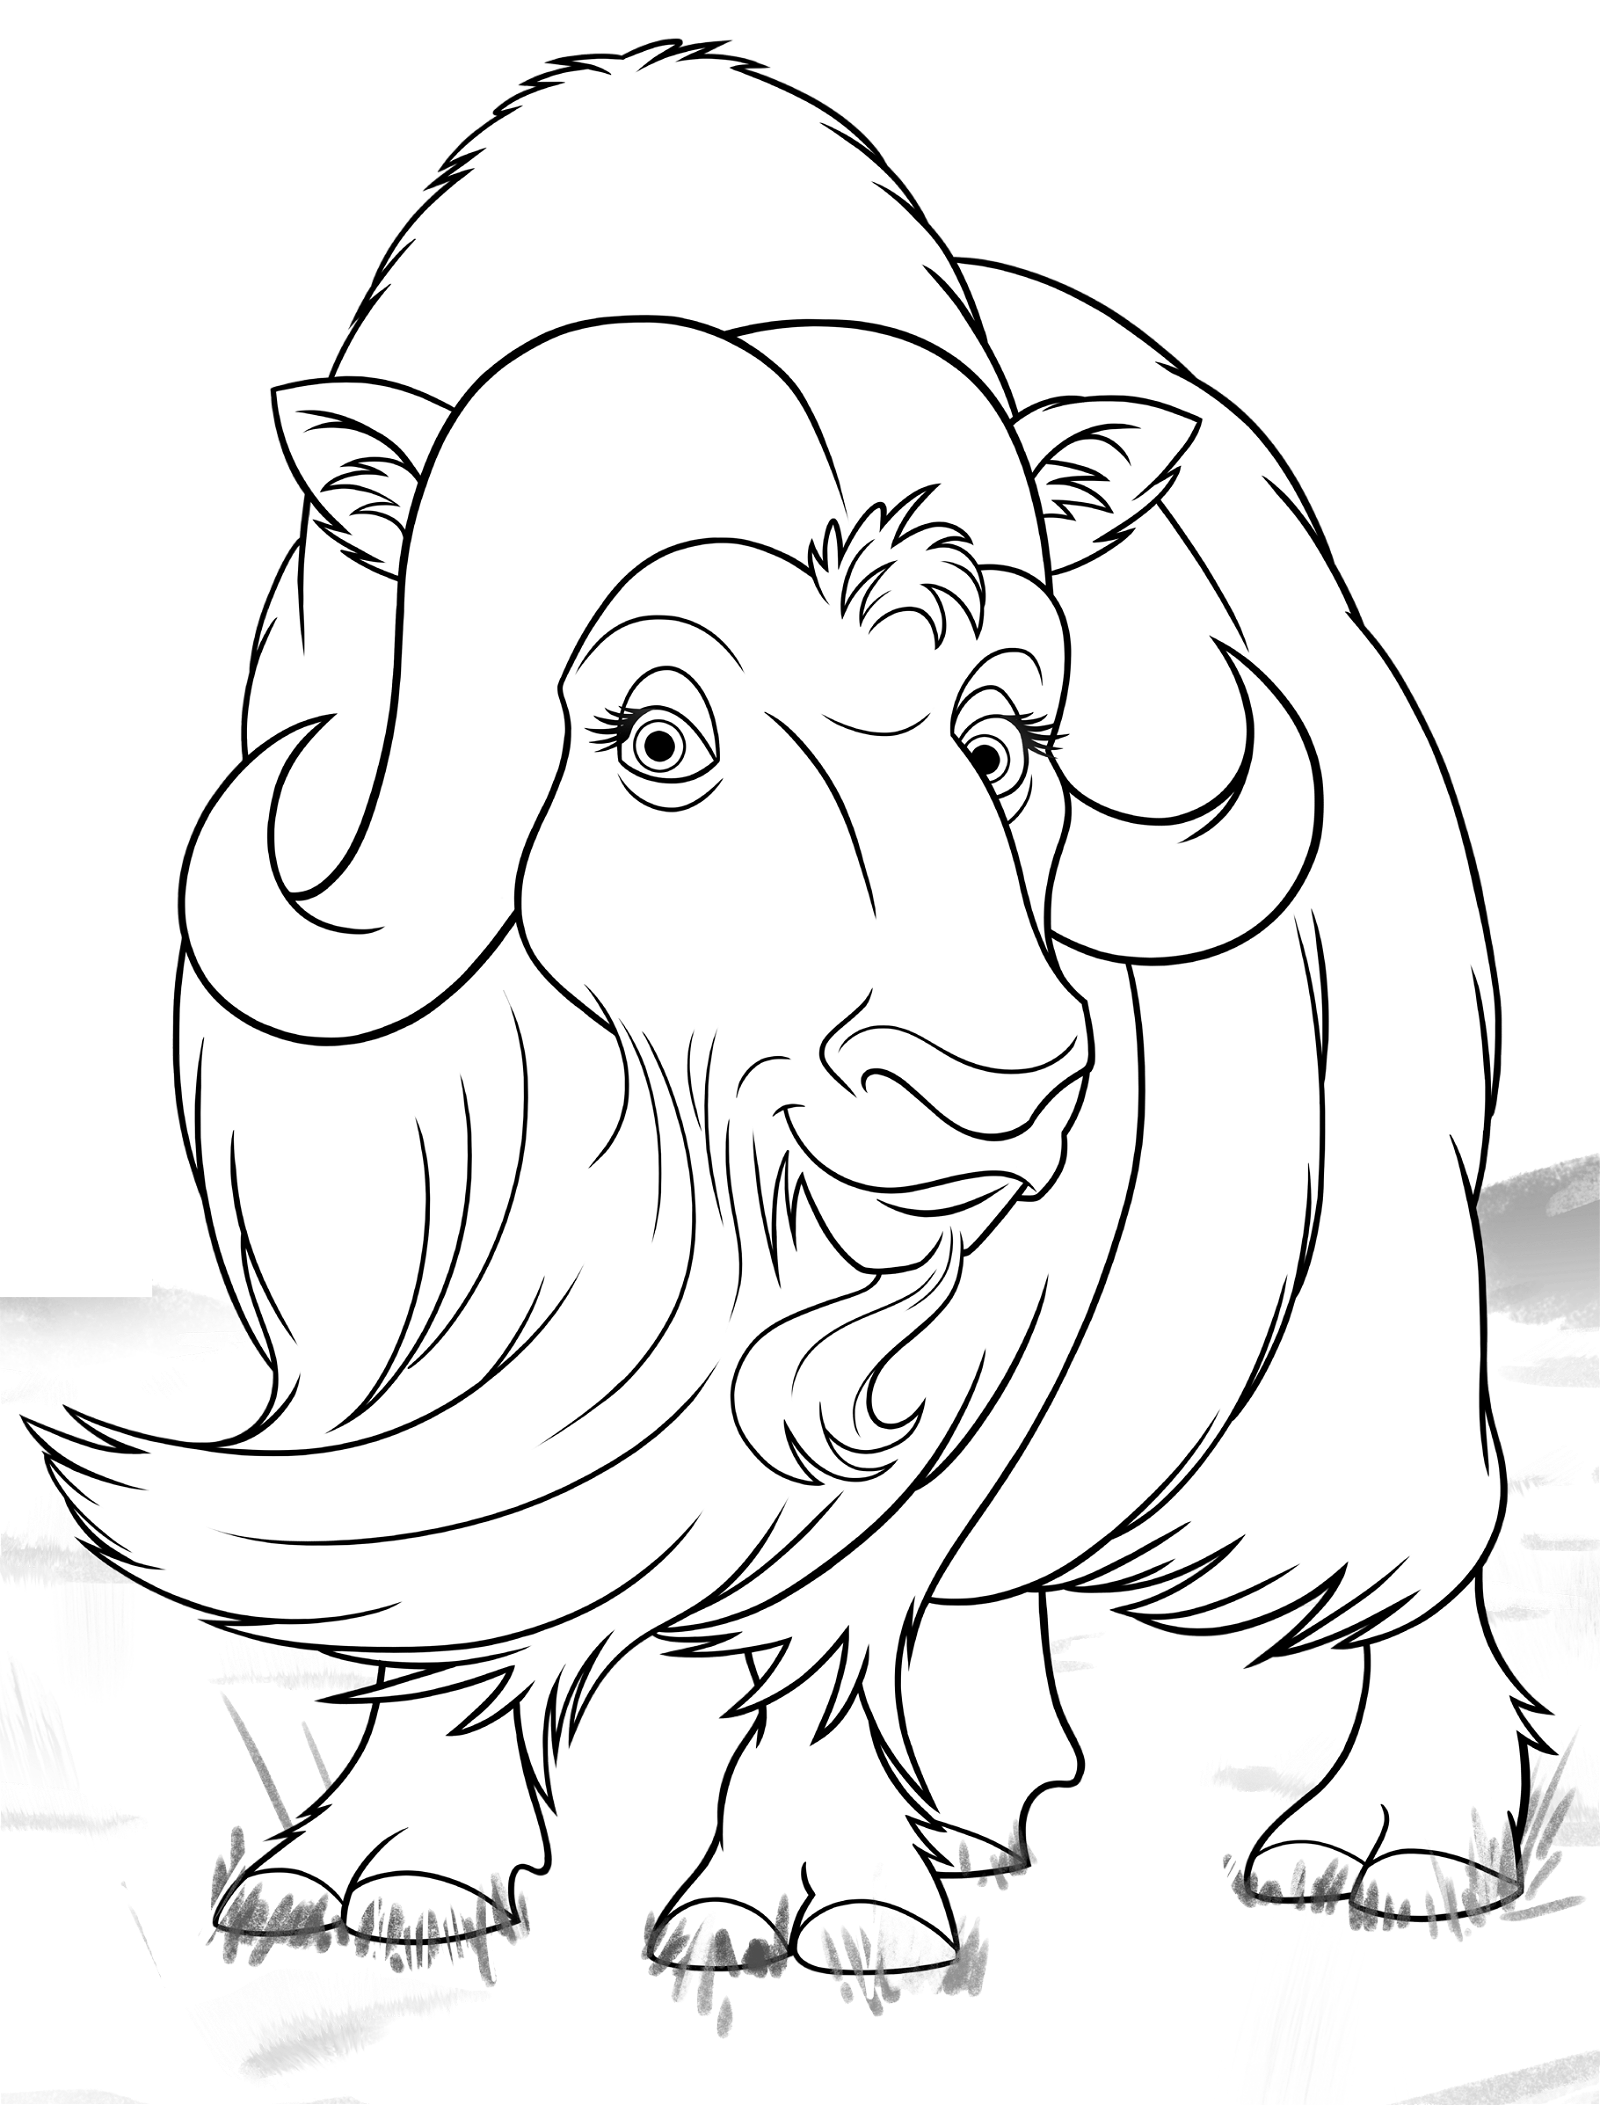 coloring pages of musk ox - photo#9